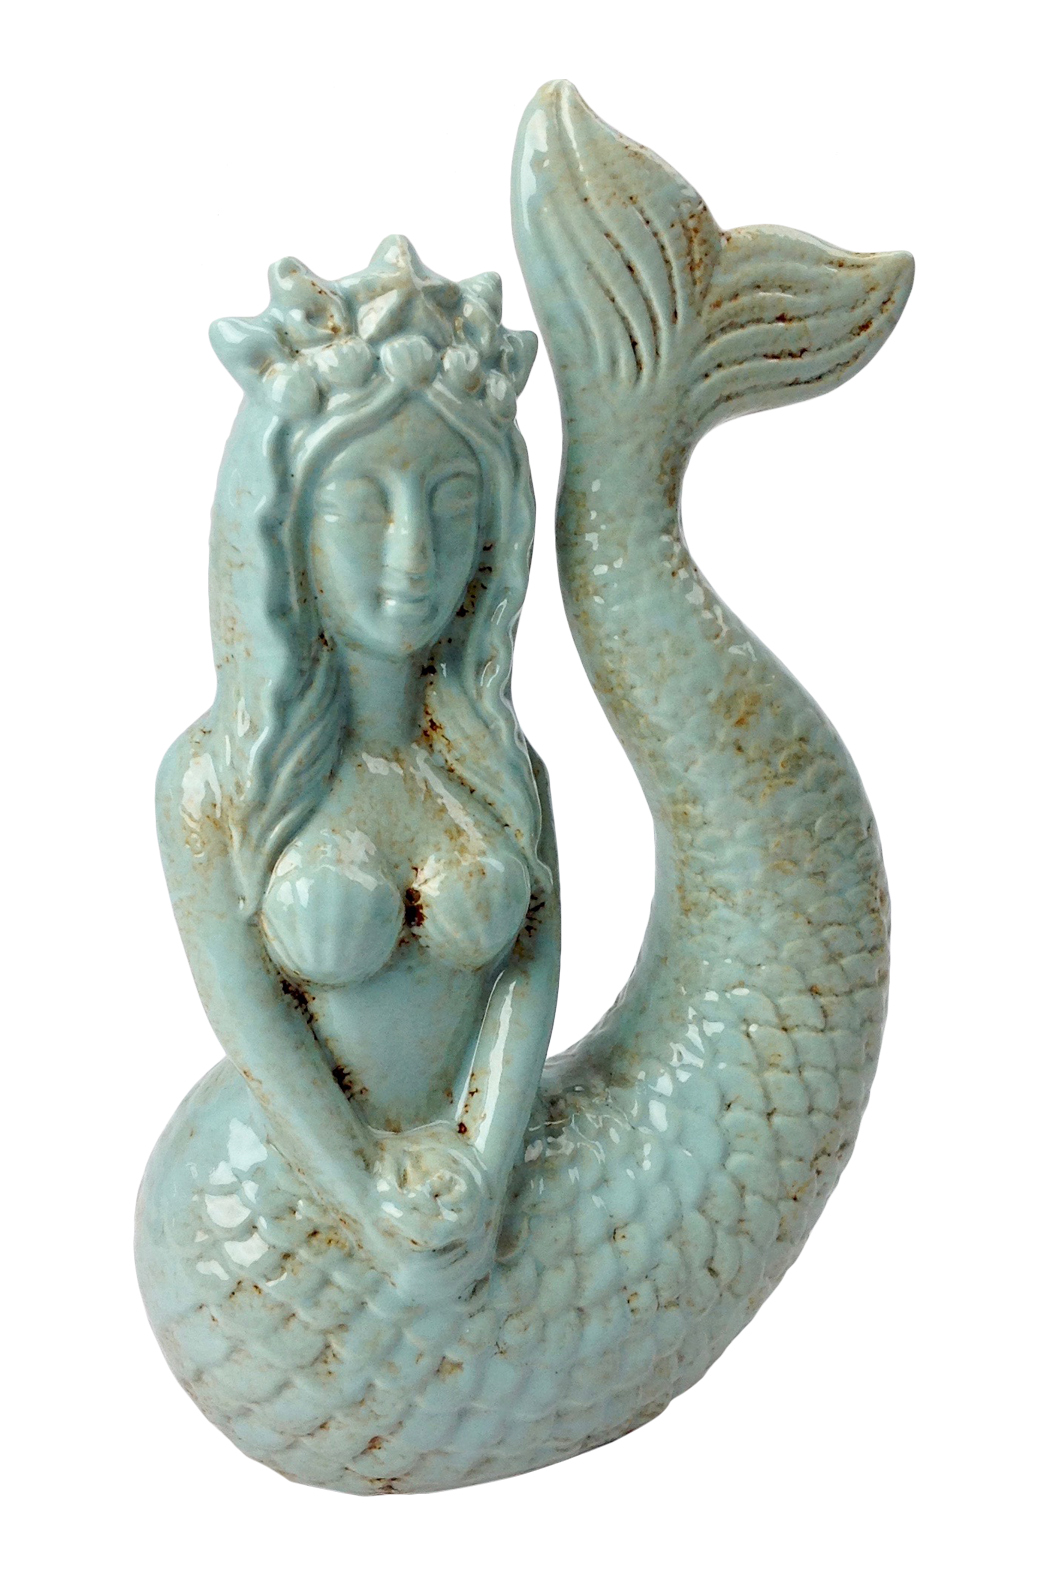 Ceramic mermaid sculpture go home modern decor gifts Home decor sculptures